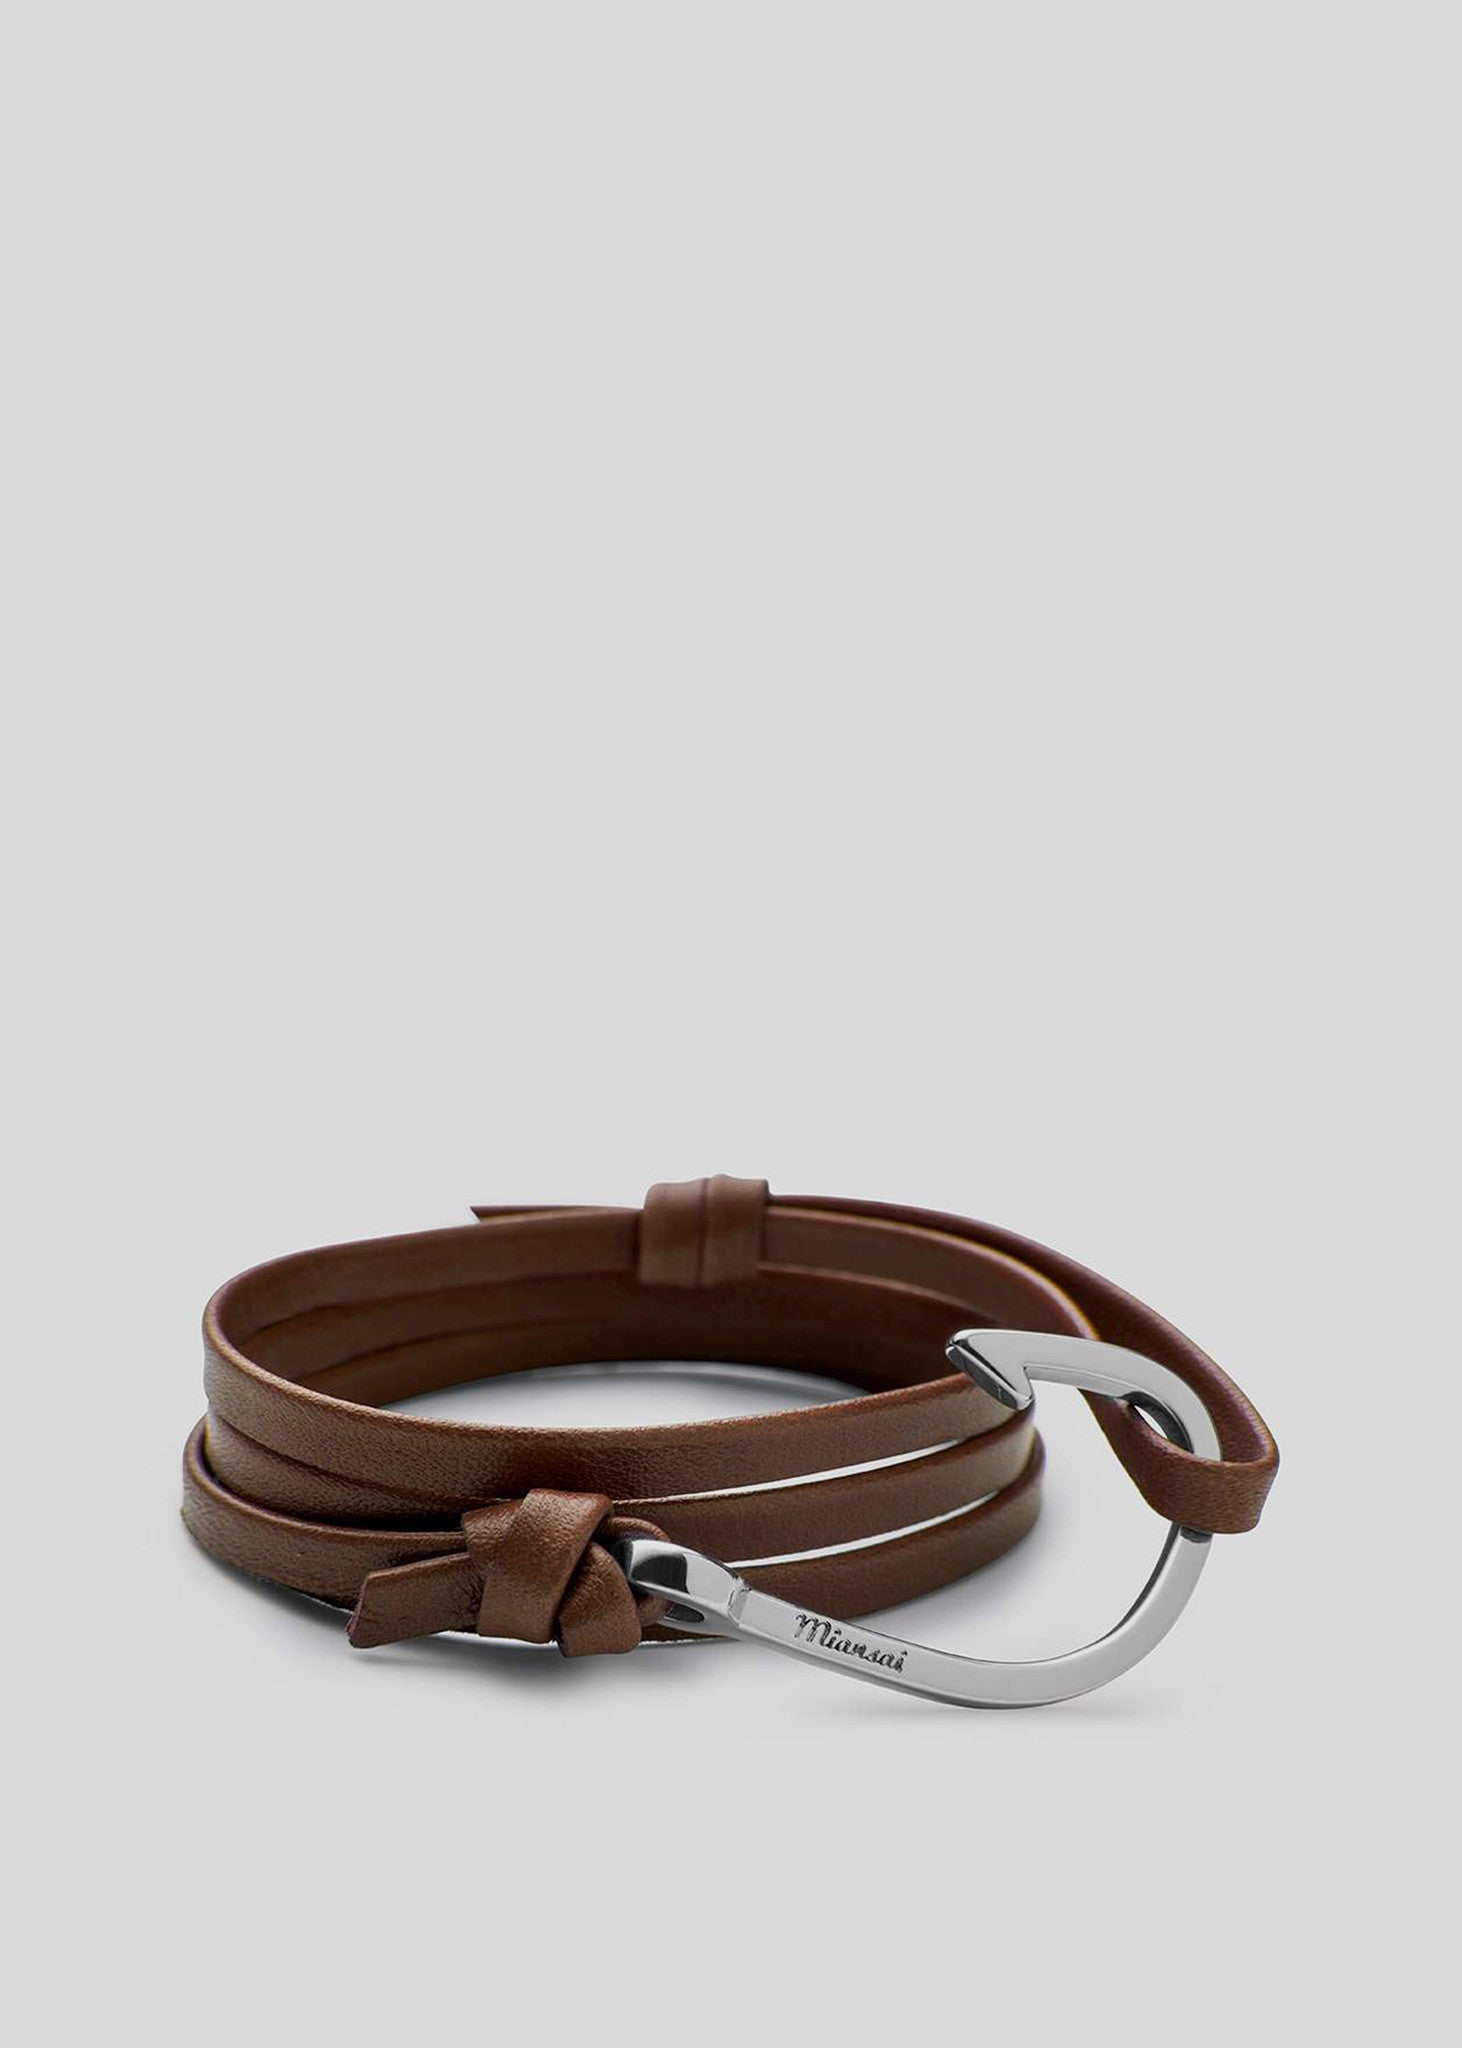 Hook on Leather Bracelet Silver Plated/Brown